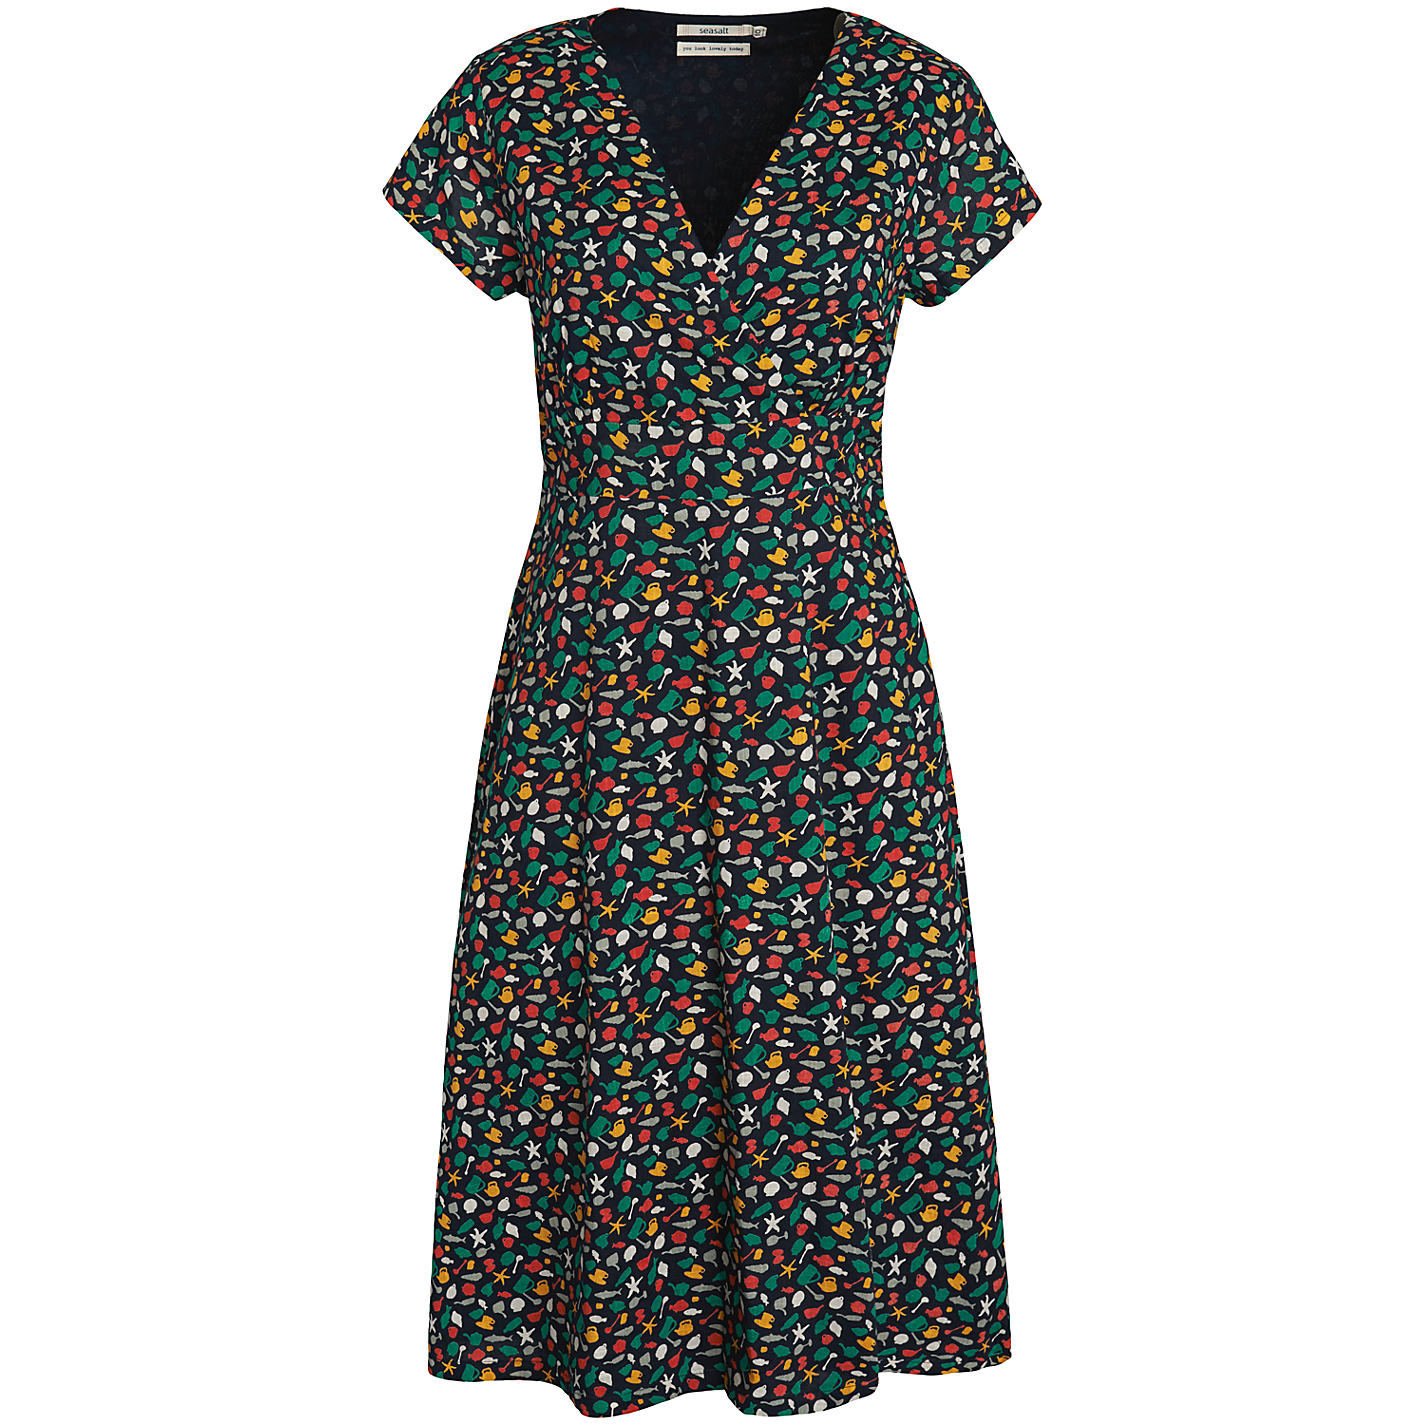 Seasalt Esmerelda dress Ethical Fashion for Autumn   My Top 10 Dresses